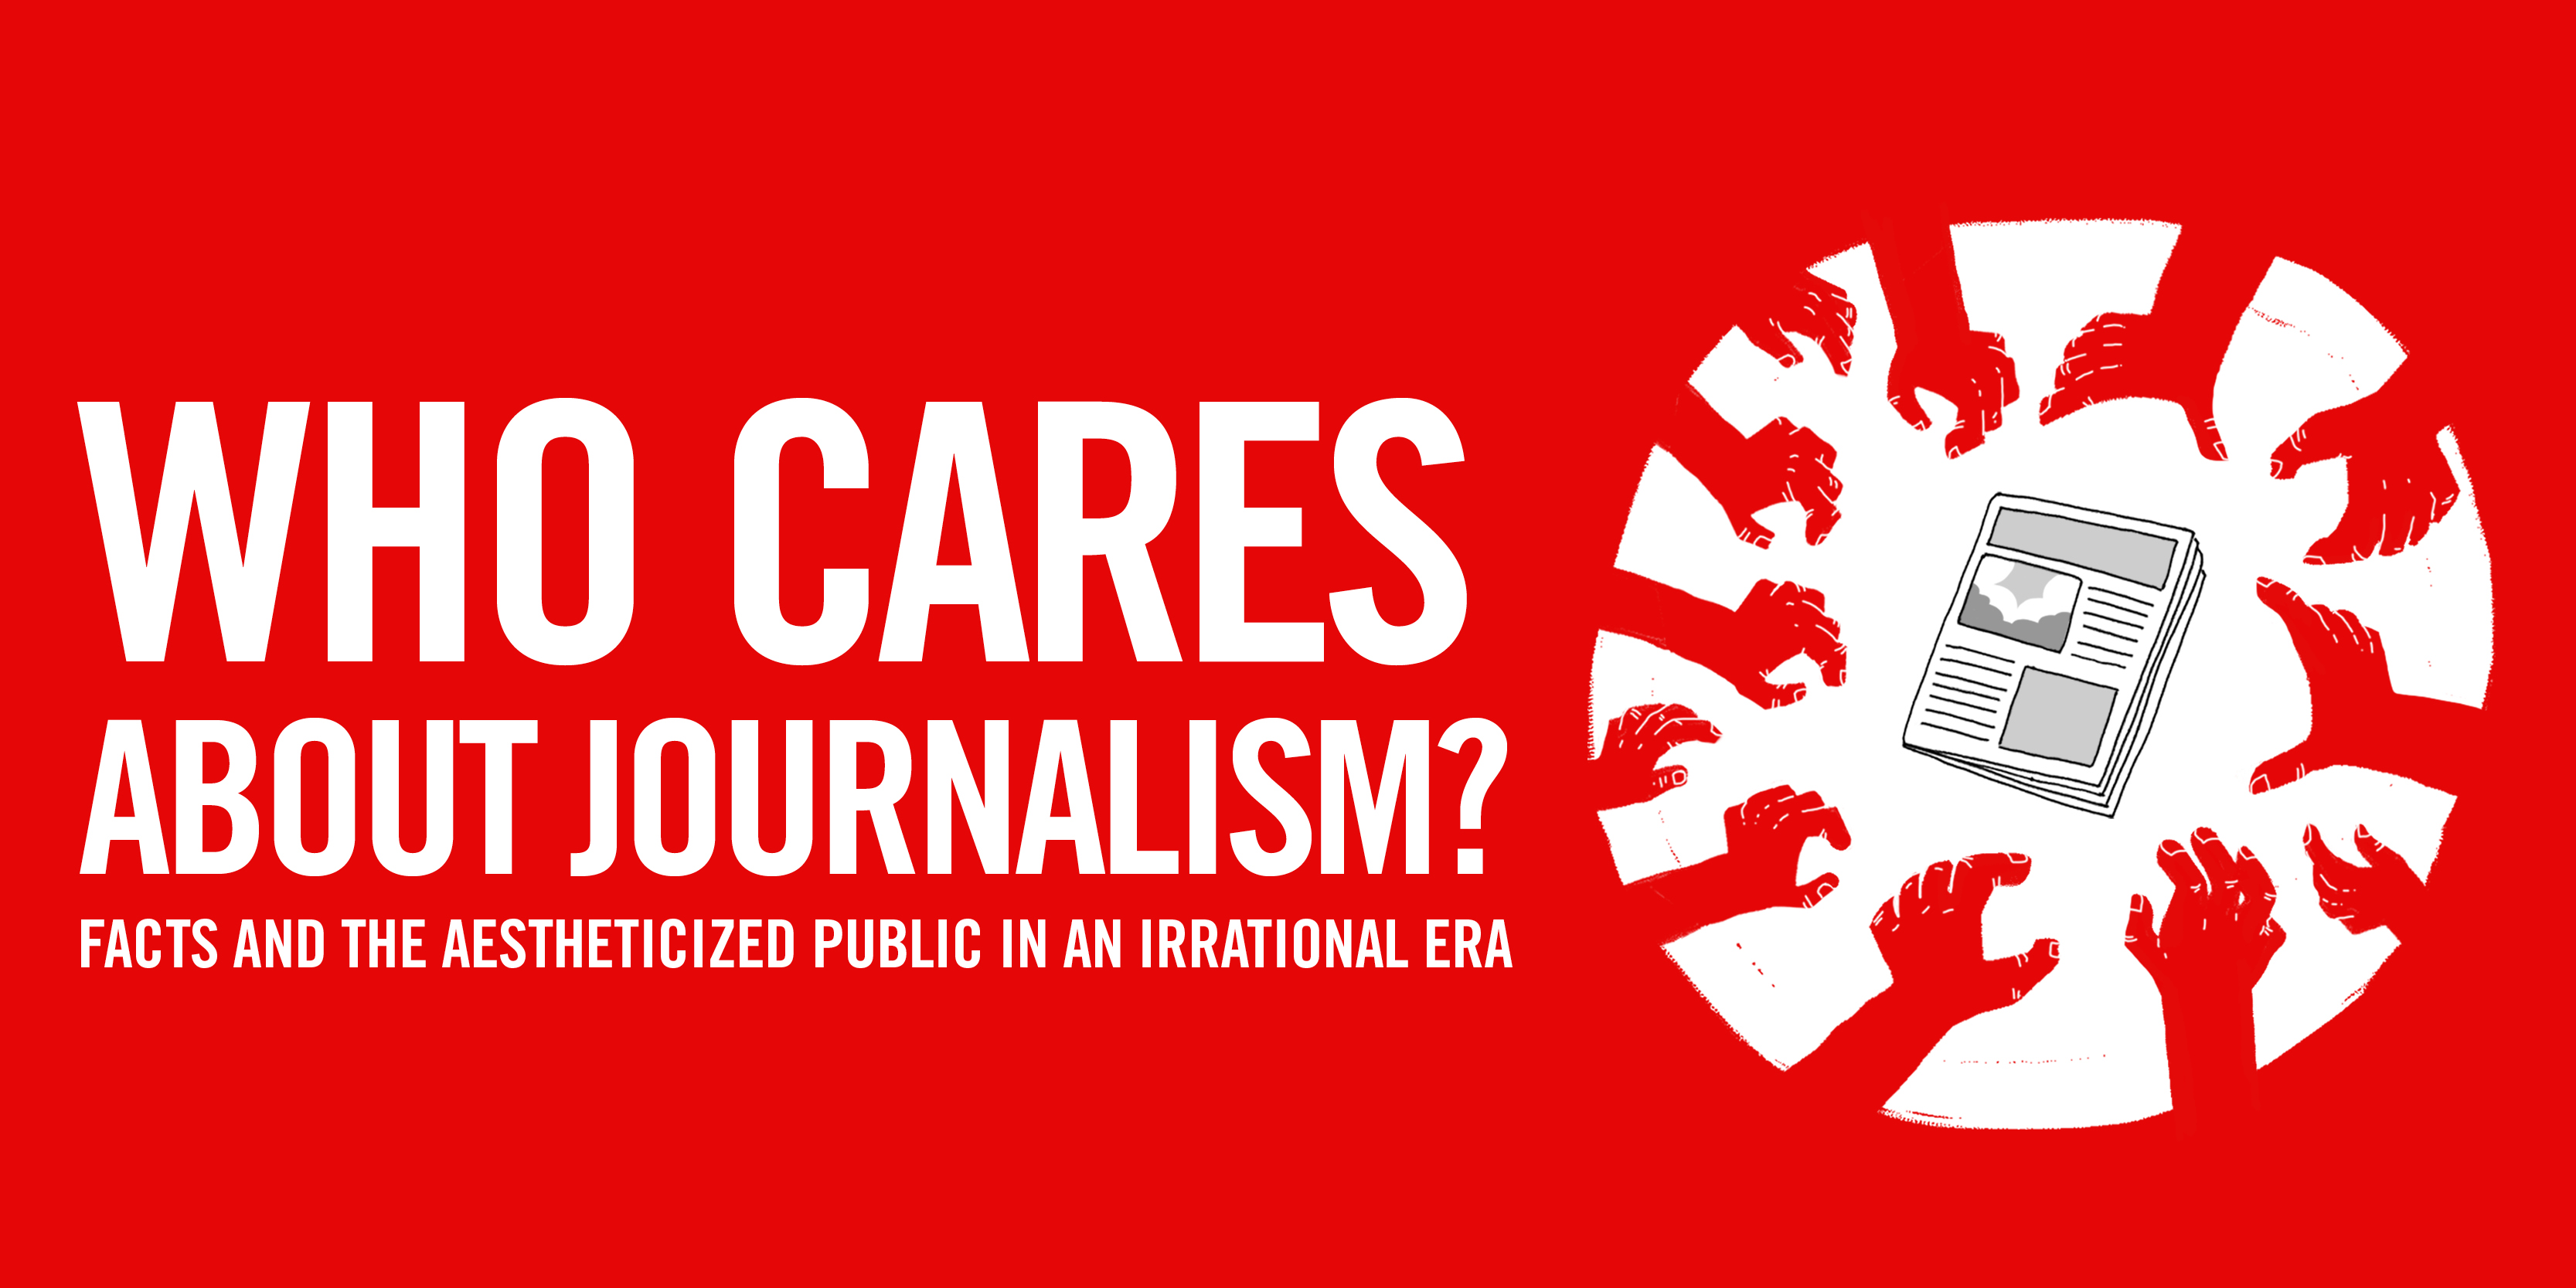 Who cares about journalism? Facts and the aestheticized public in an irrational era